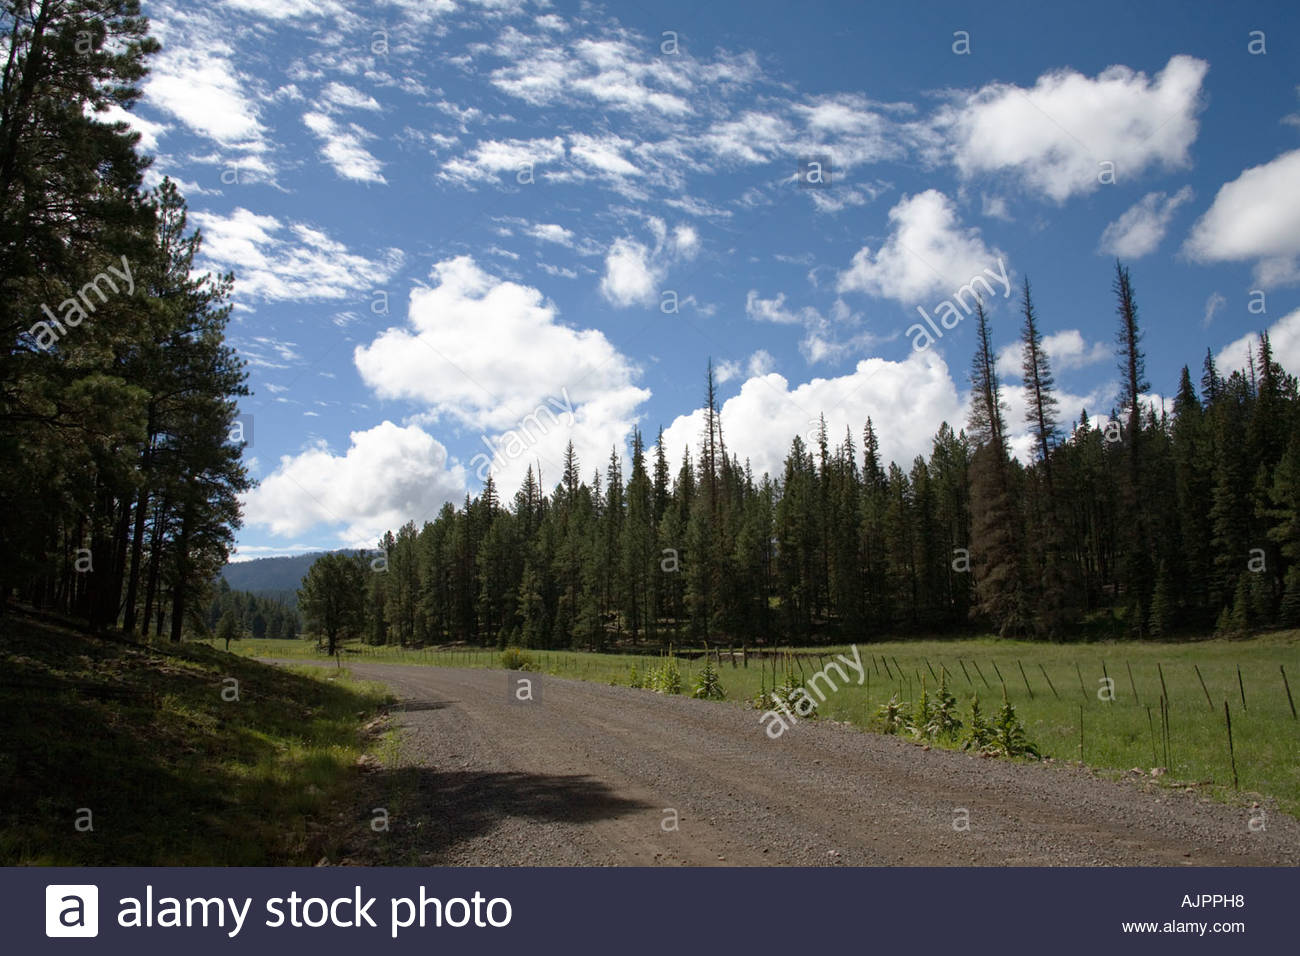 Scene along forest road 26 beaver creek apache fnational orest Arizona - Stock Image